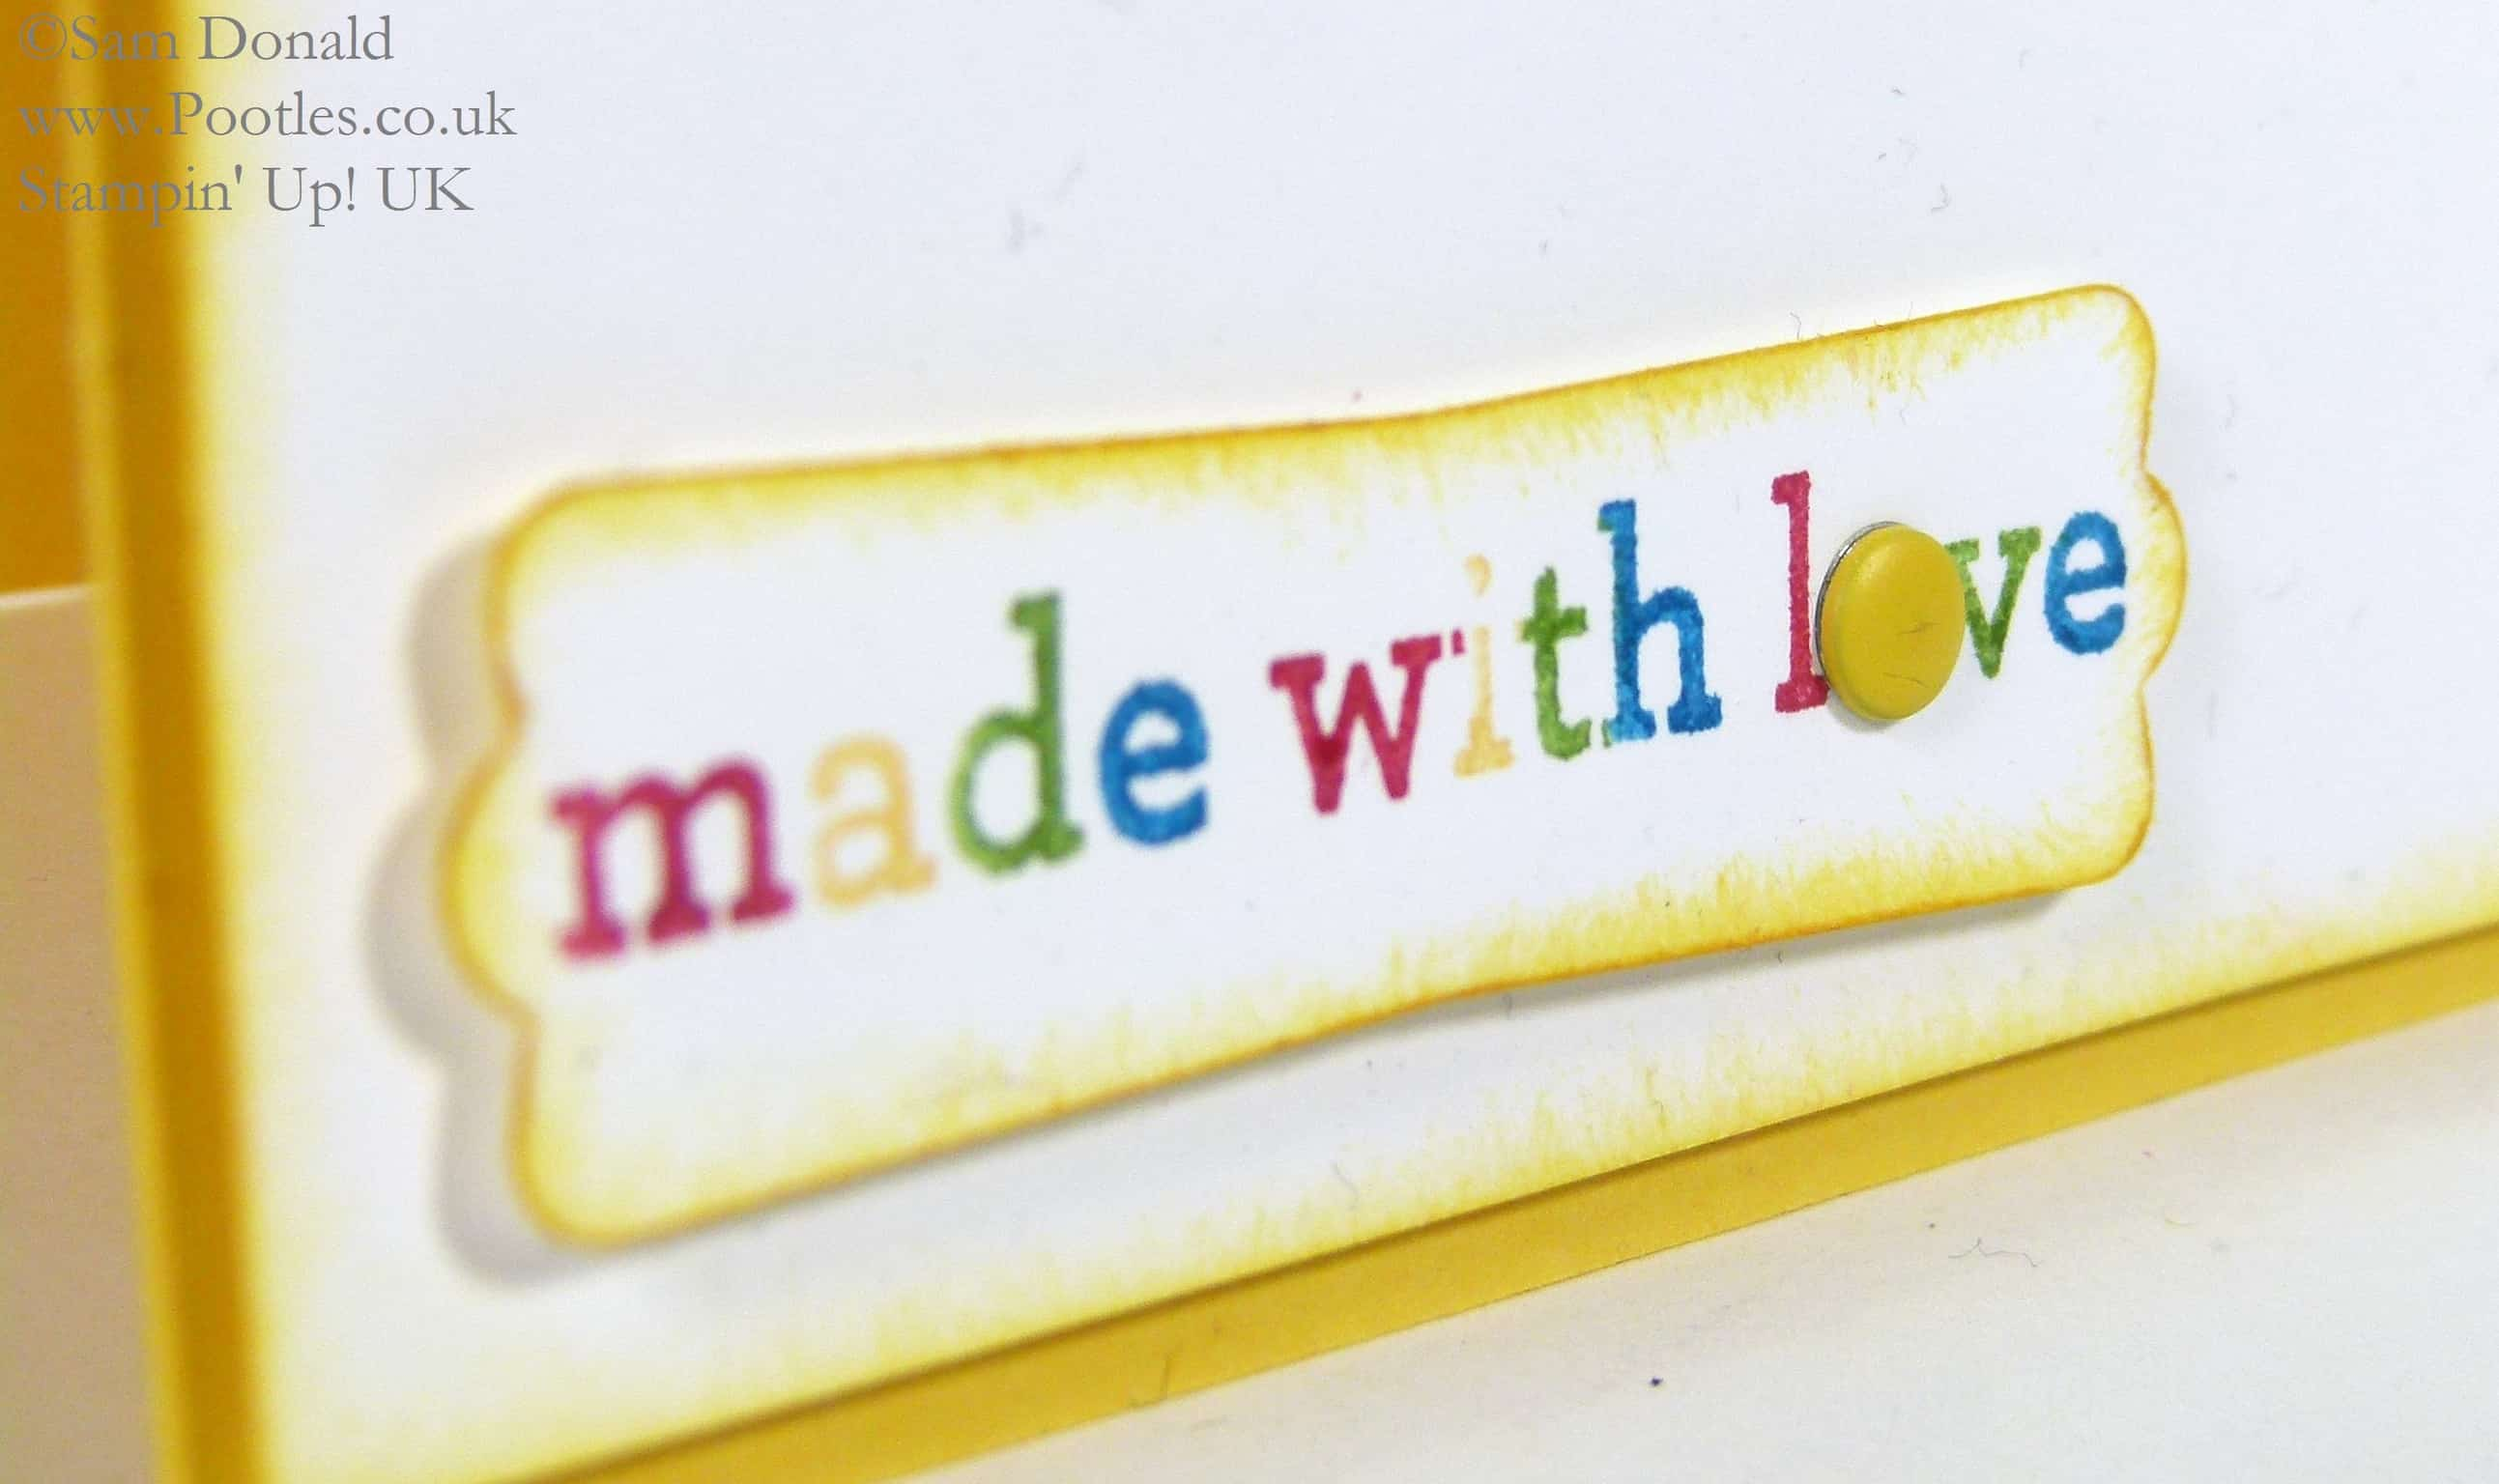 POOTLES Stampin' Up! UK Kind & Cosy is Made with Love Marker Detail